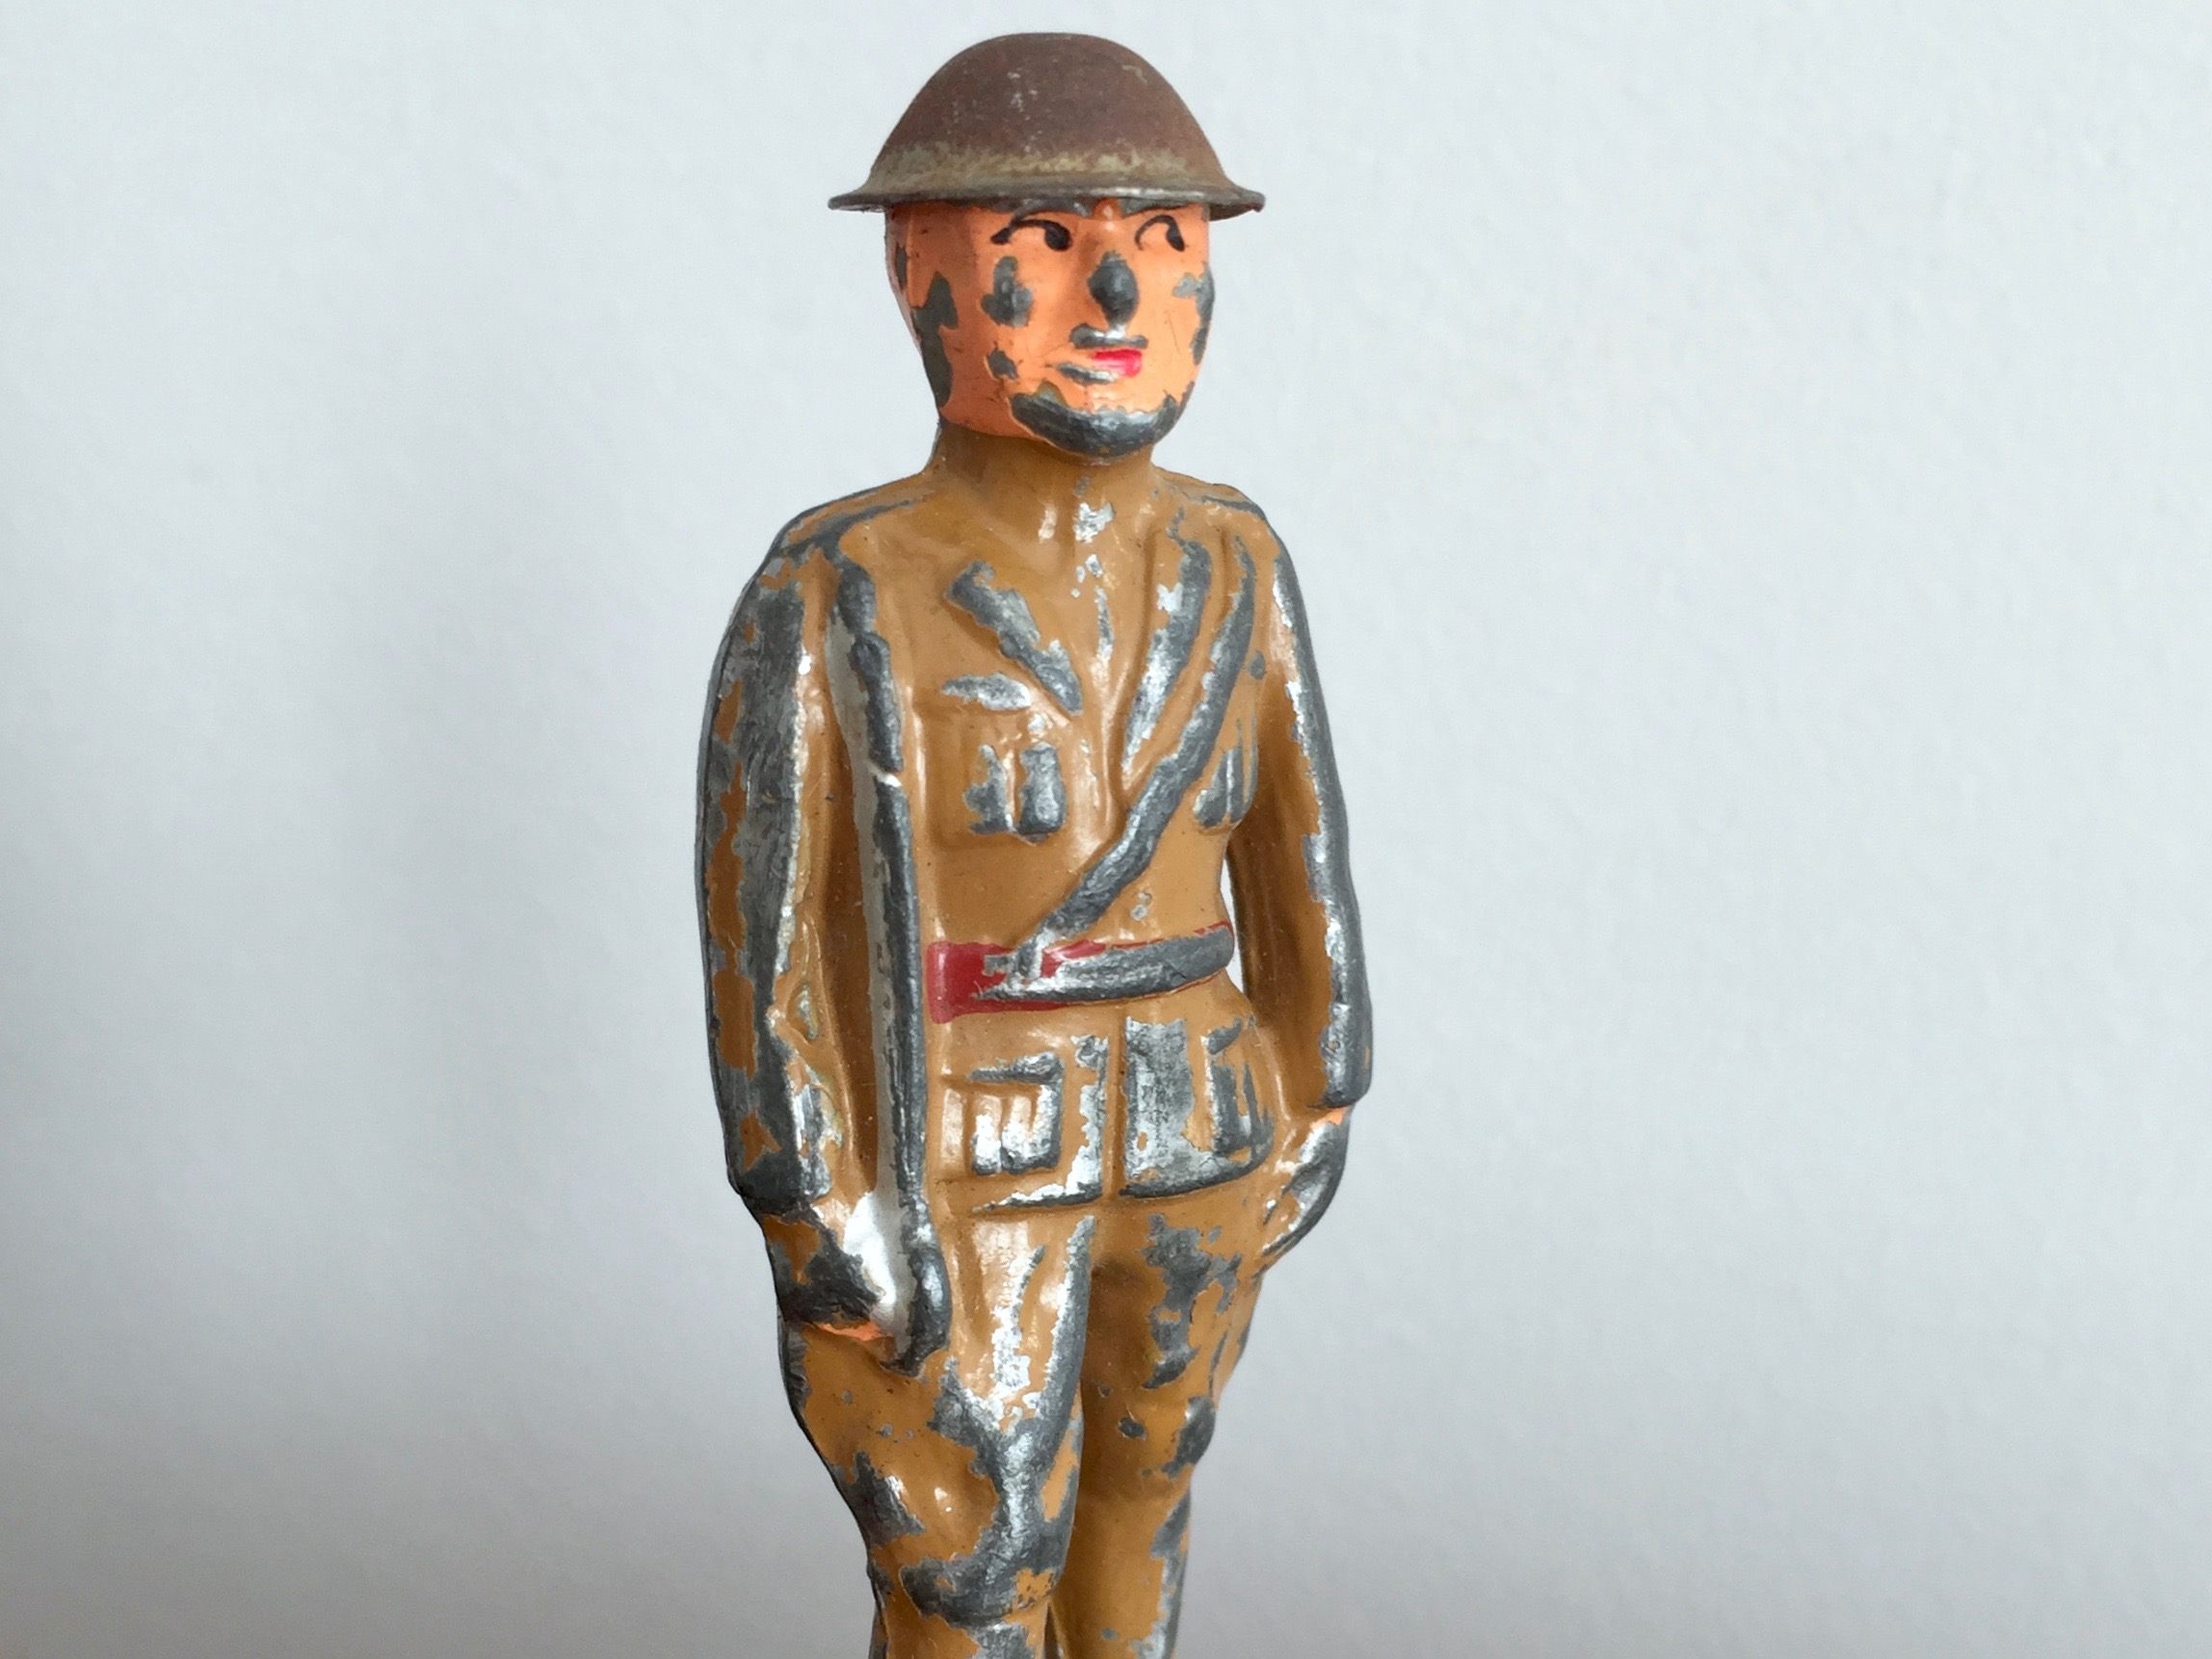 Barclay Toy Officer with Sword